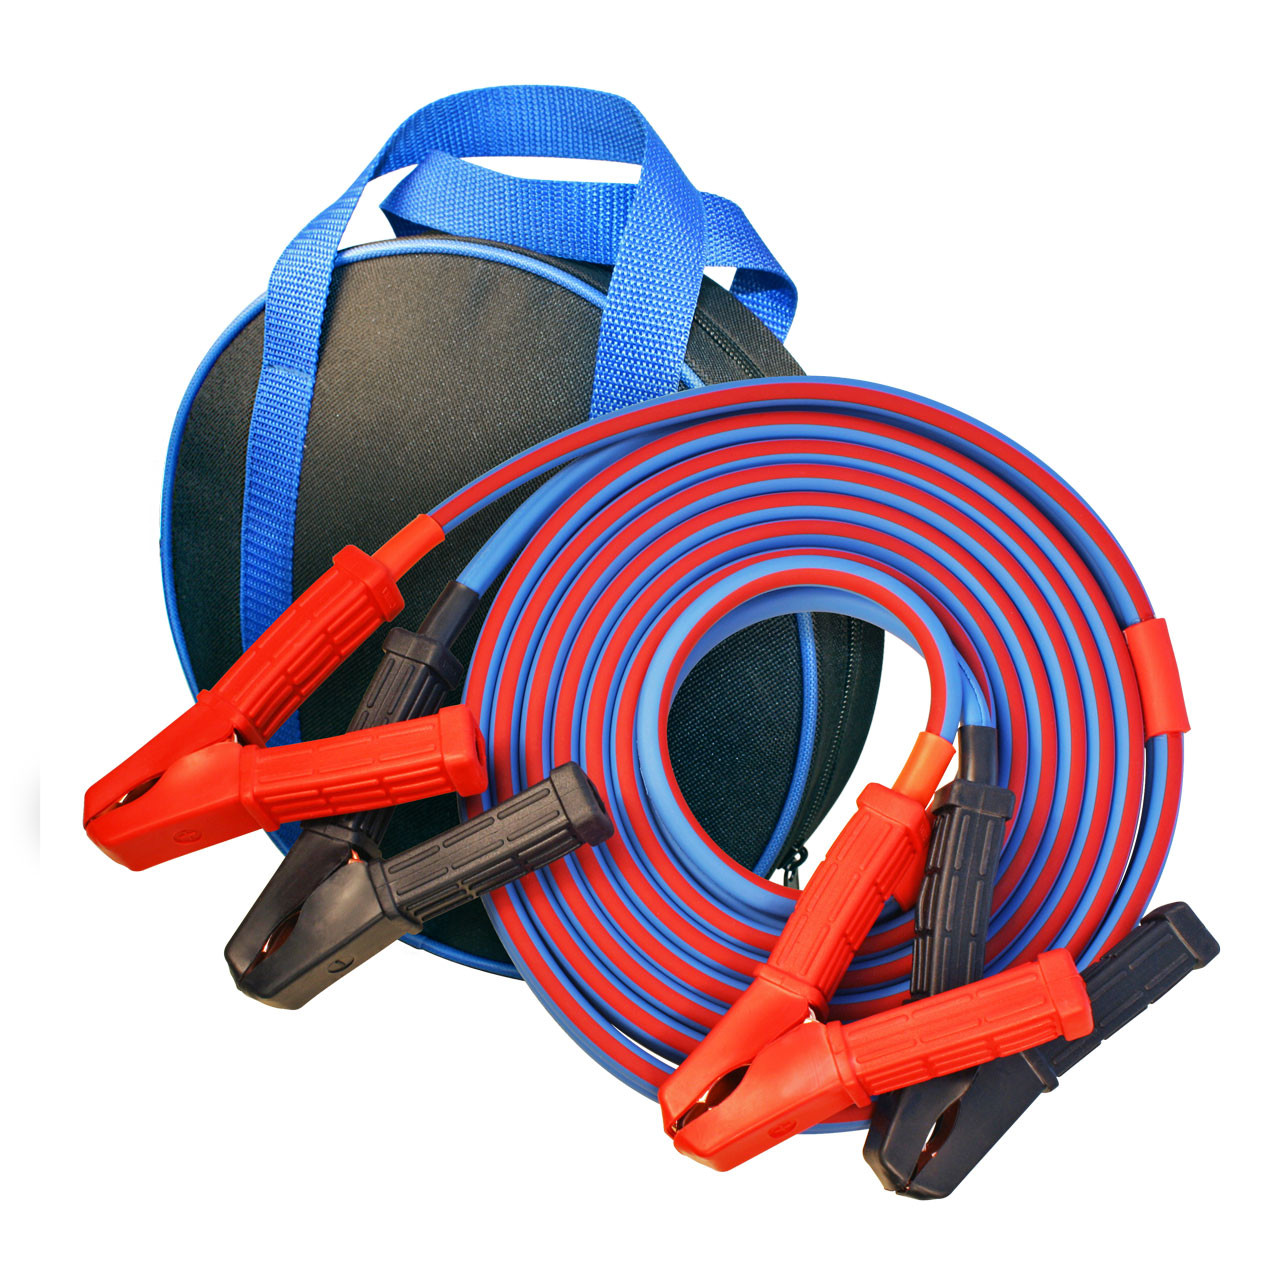 Premium Jumper Cables 6 gauge 12' sized for ATVs, UTVs, Golf Carts, Motorcycles, Mowers, Scooters, and similar